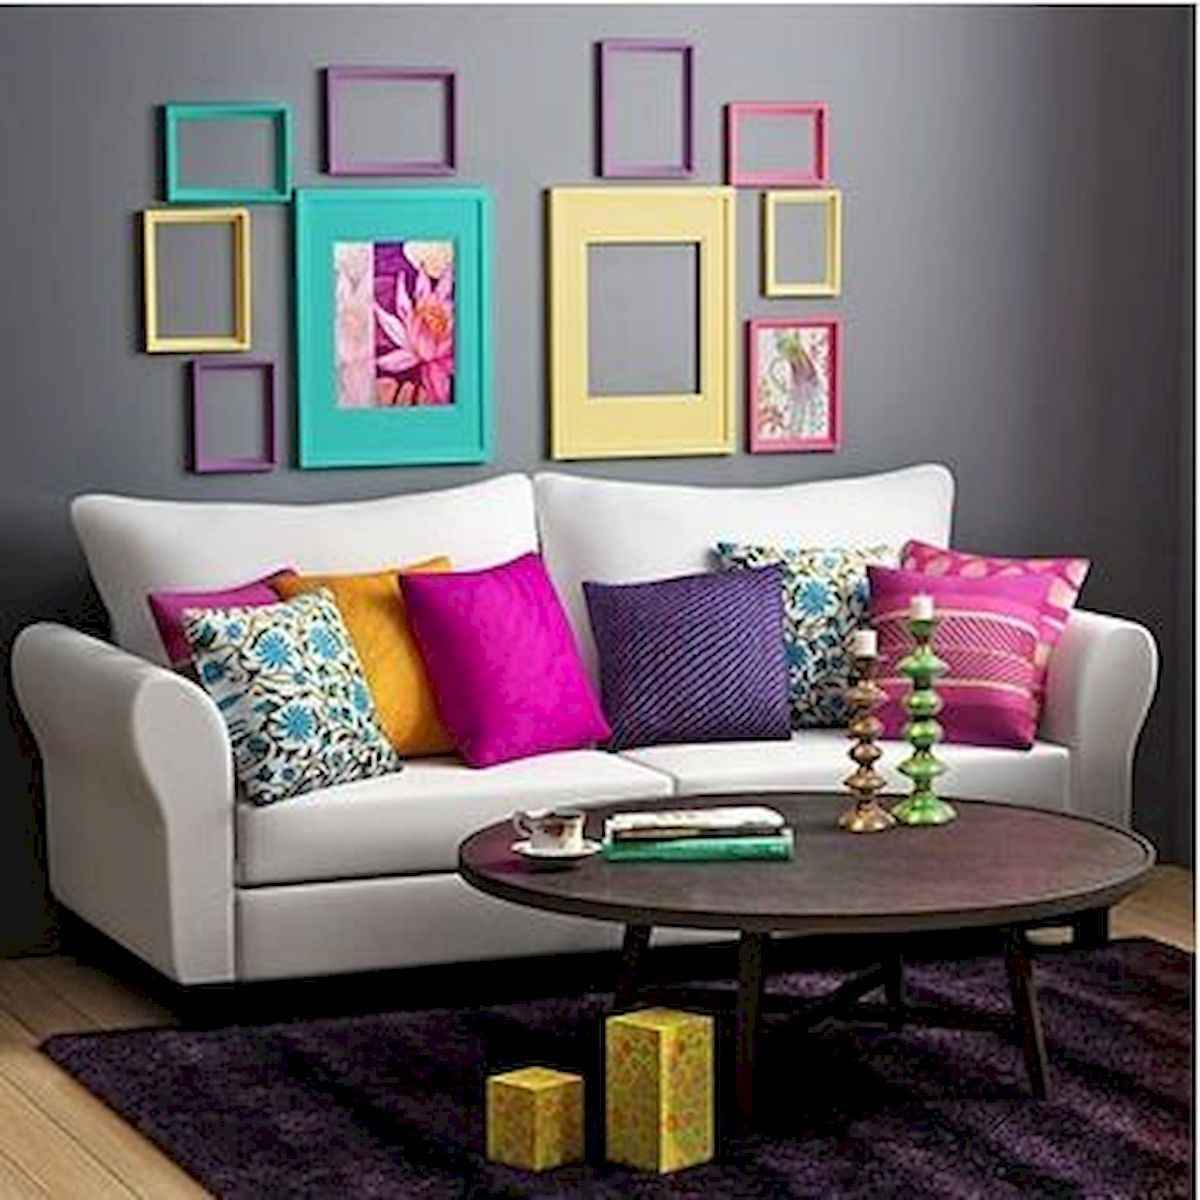 80+ Stunning Colorful Living Room Decor Ideas And Remodel for Summer Project (12)